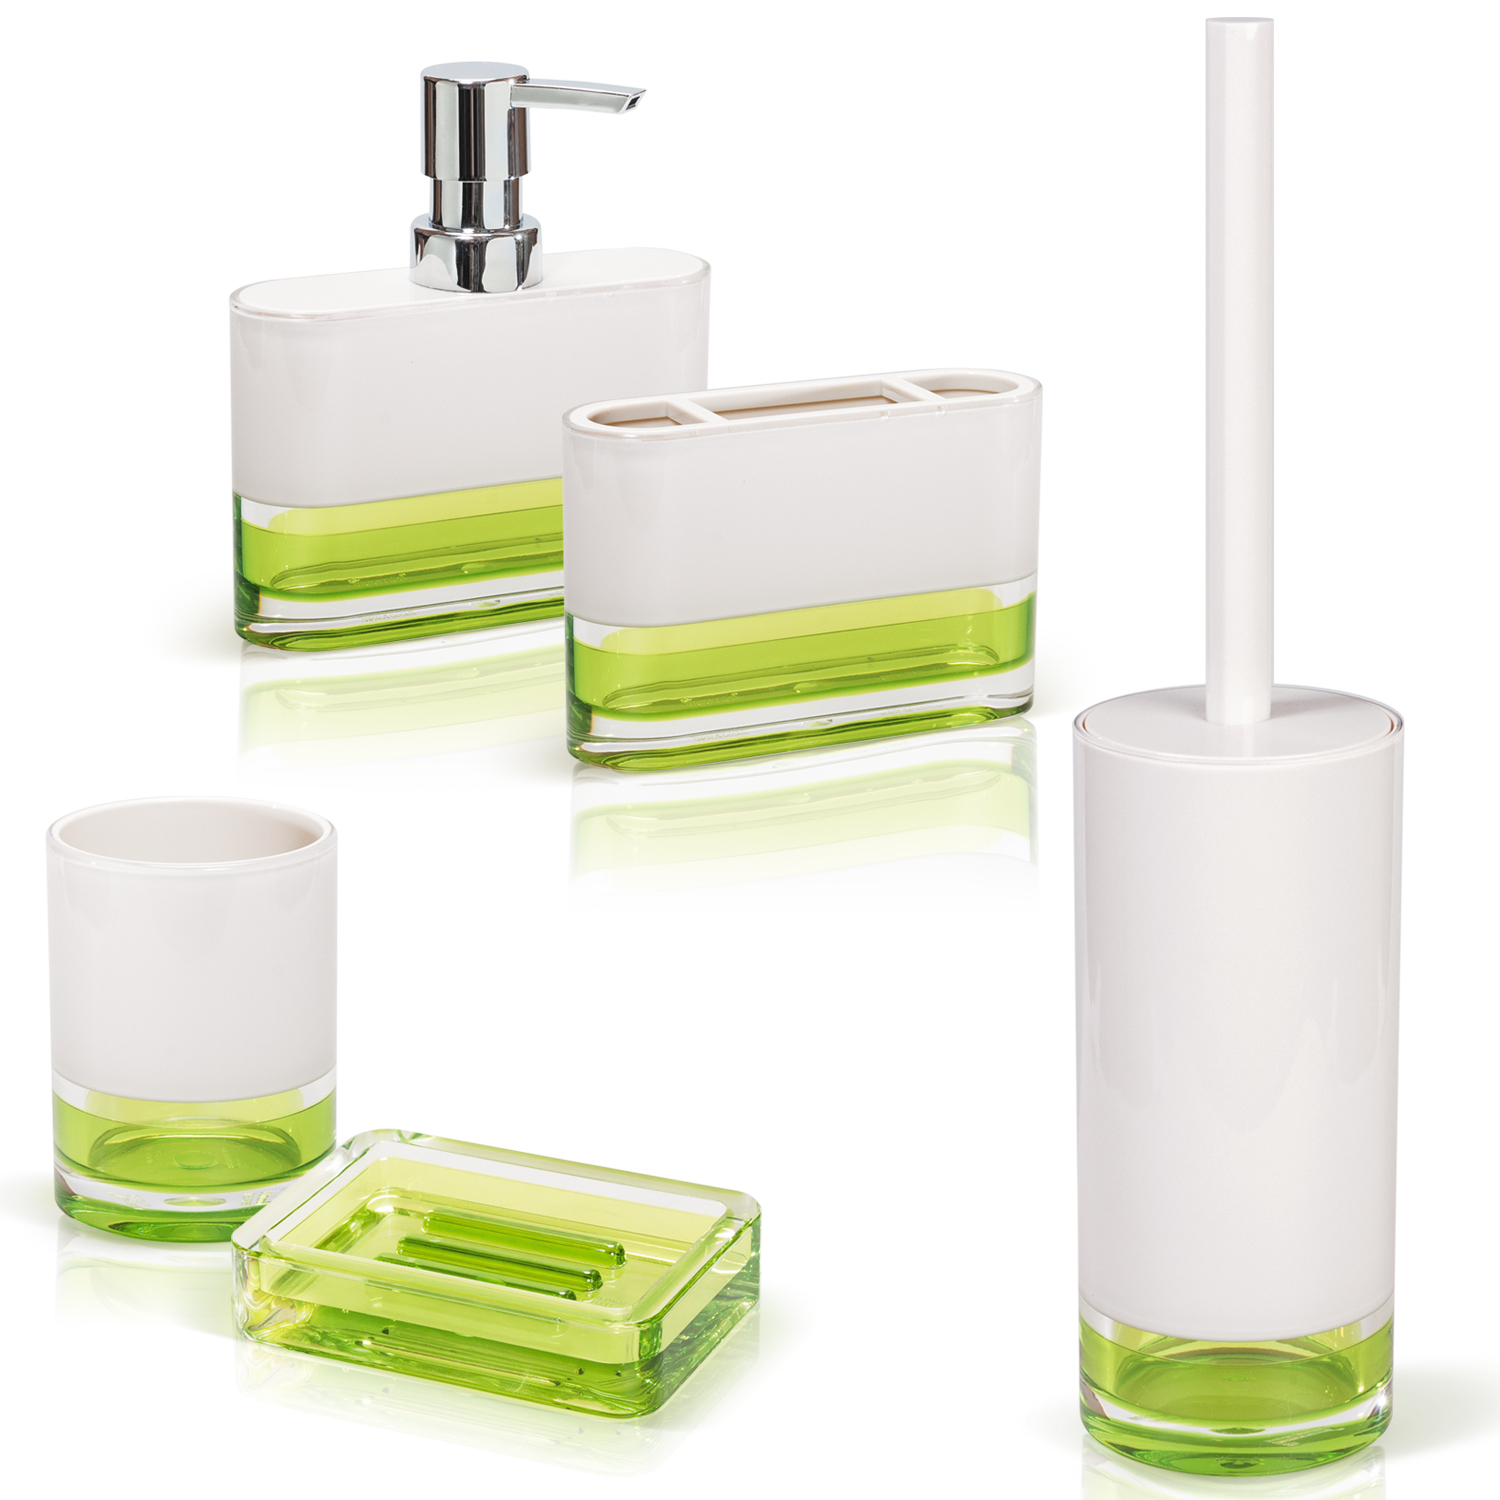 Tatkraft Topaz Green Bathroom Accessories Set of 5: Soap Dish, Bath Tumbler, Soap Dispenser, Toothbrush Holder, Toilet Brush Set - Tatkraft